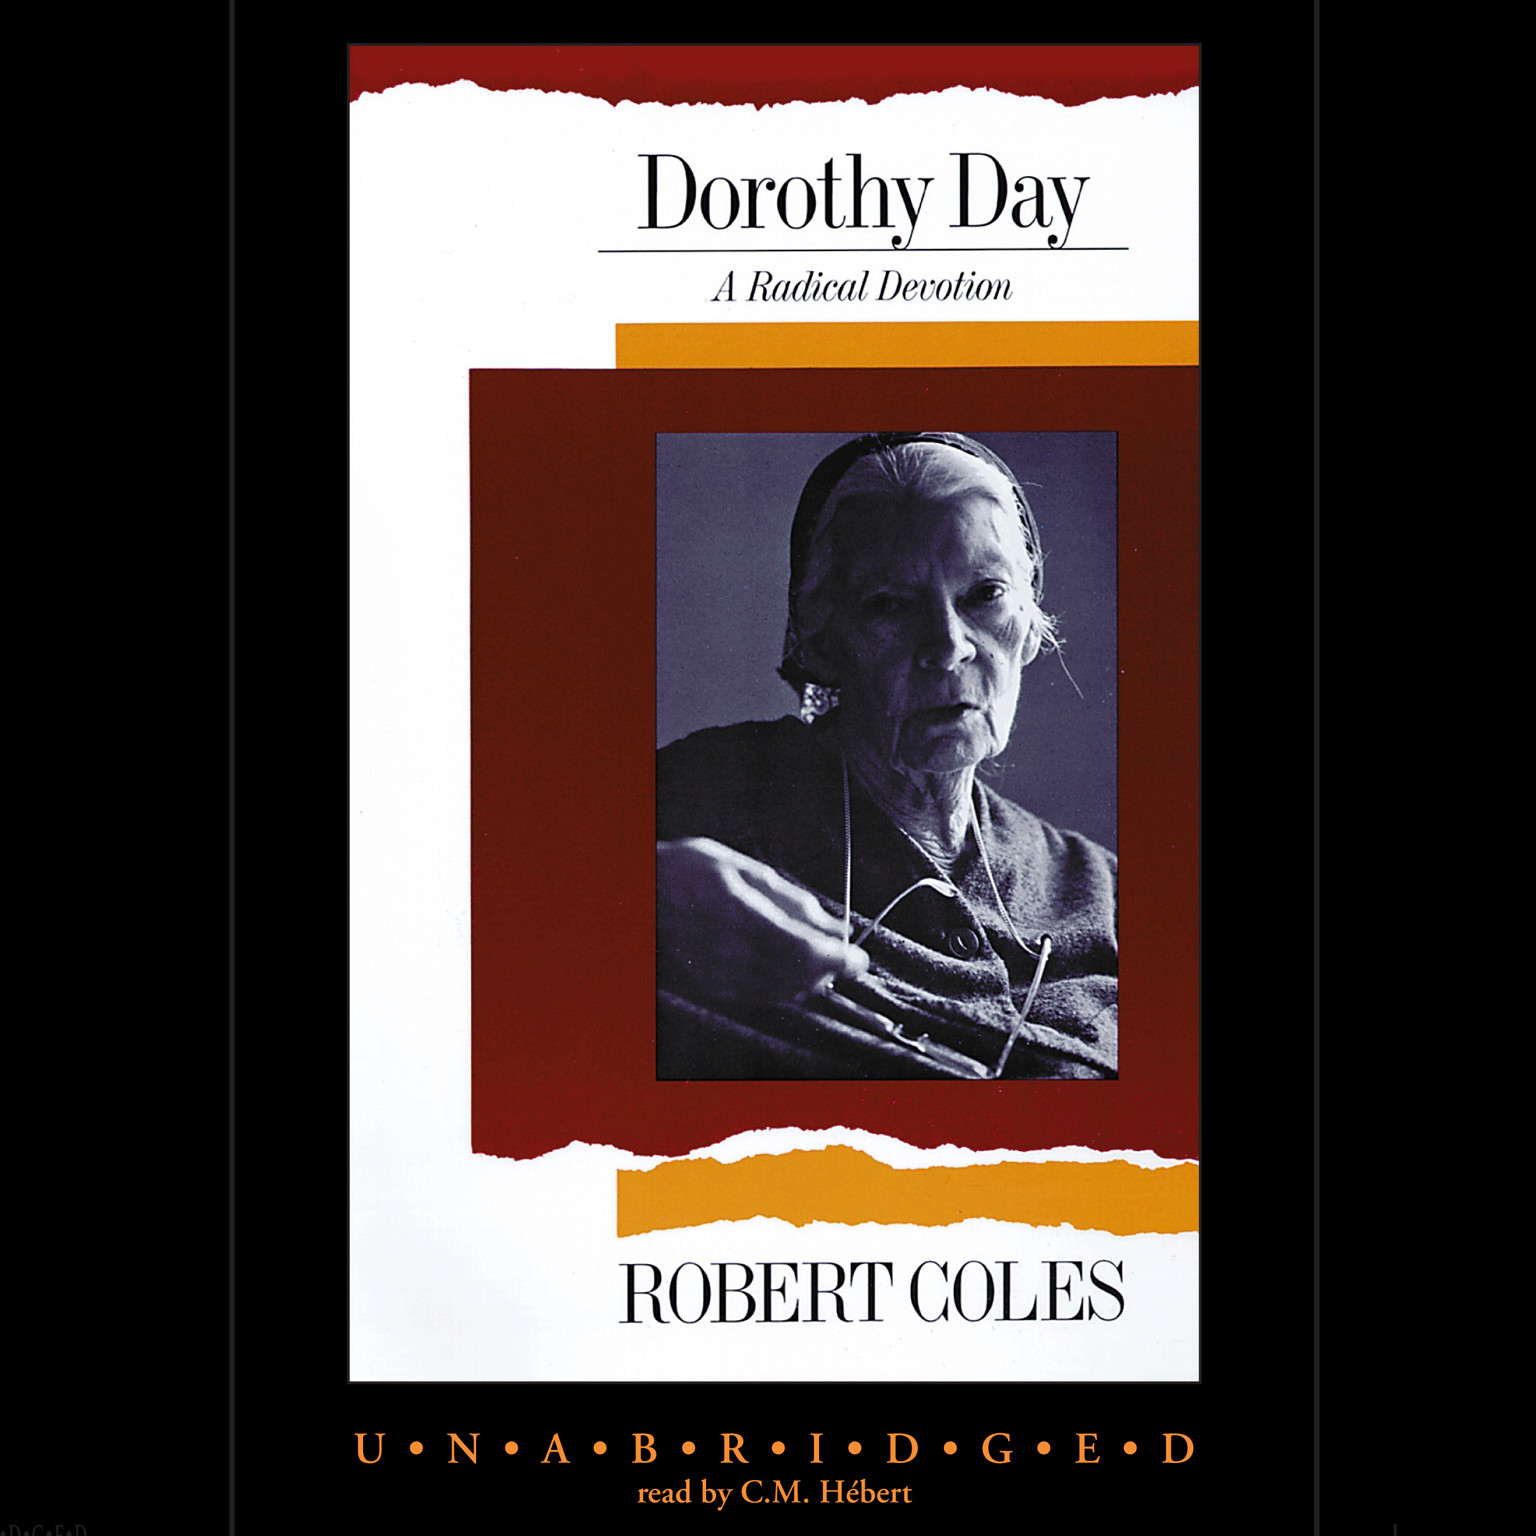 dorothy day audiobook by robert coles for just 5 95